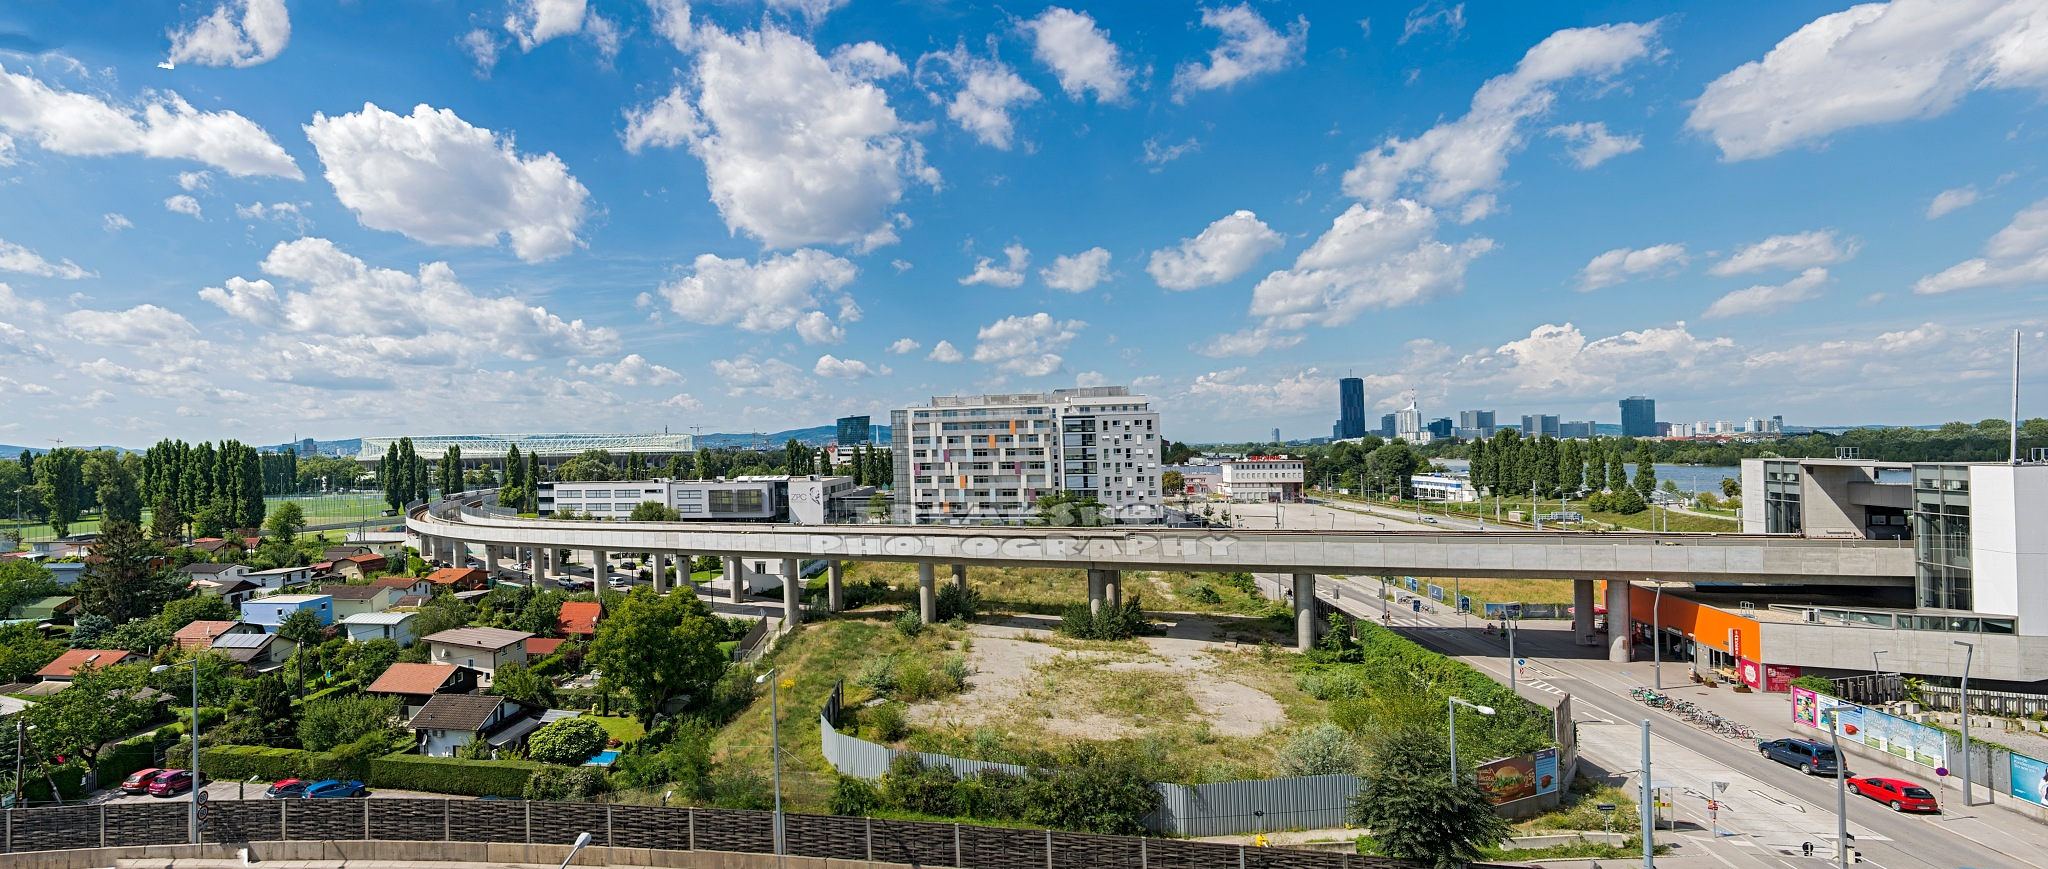 Big city view Vienna by FreakshotPhotography